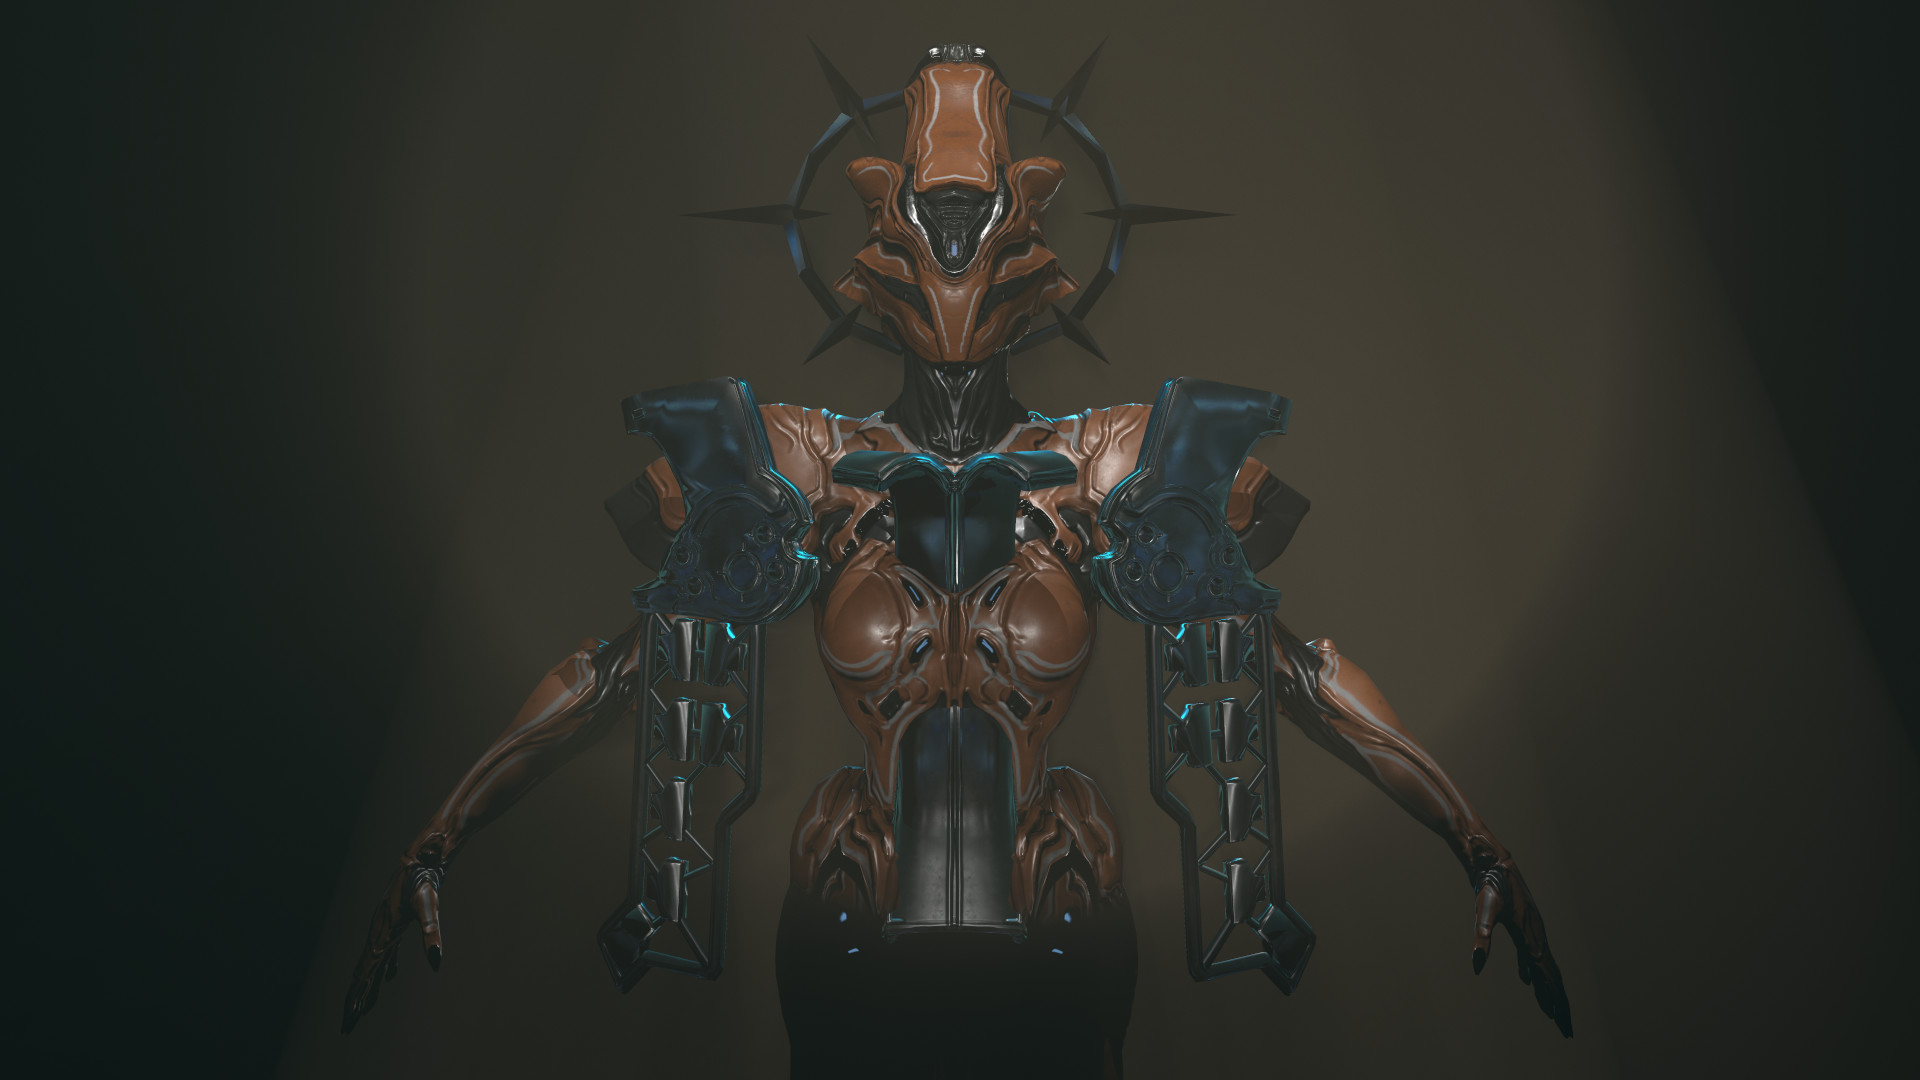 Conor Souness Gara Rouen Alt Helmet Warframe Tennogen Sadly, she doesn't feel as superior as other dps warframes and also lacks the ability to be as efficient with her crowd control as an. conor souness